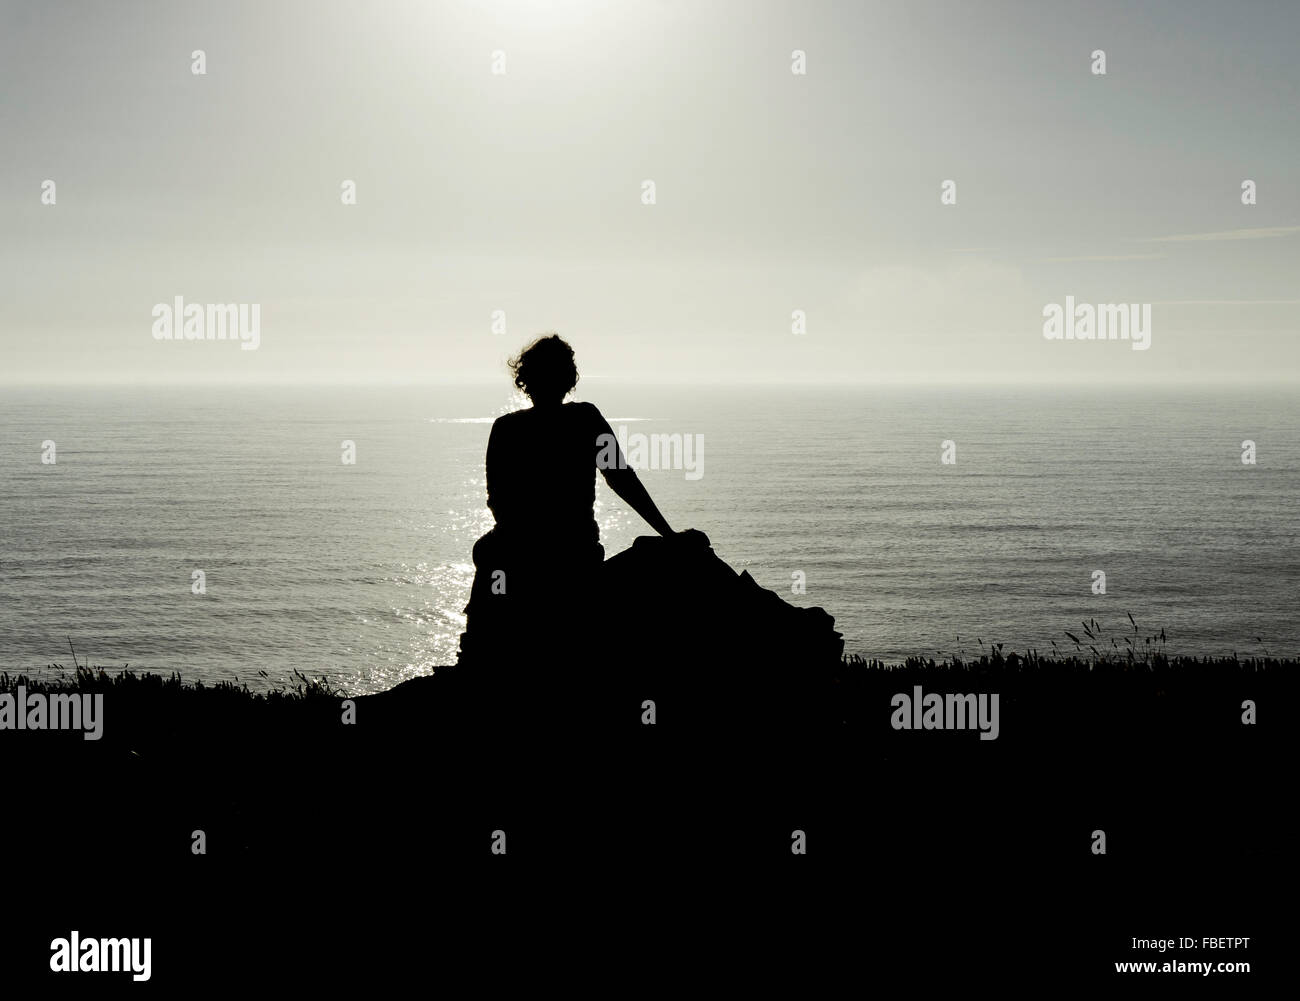 Silhouette Woman Sitting On Rock Against Sky - Stock Image